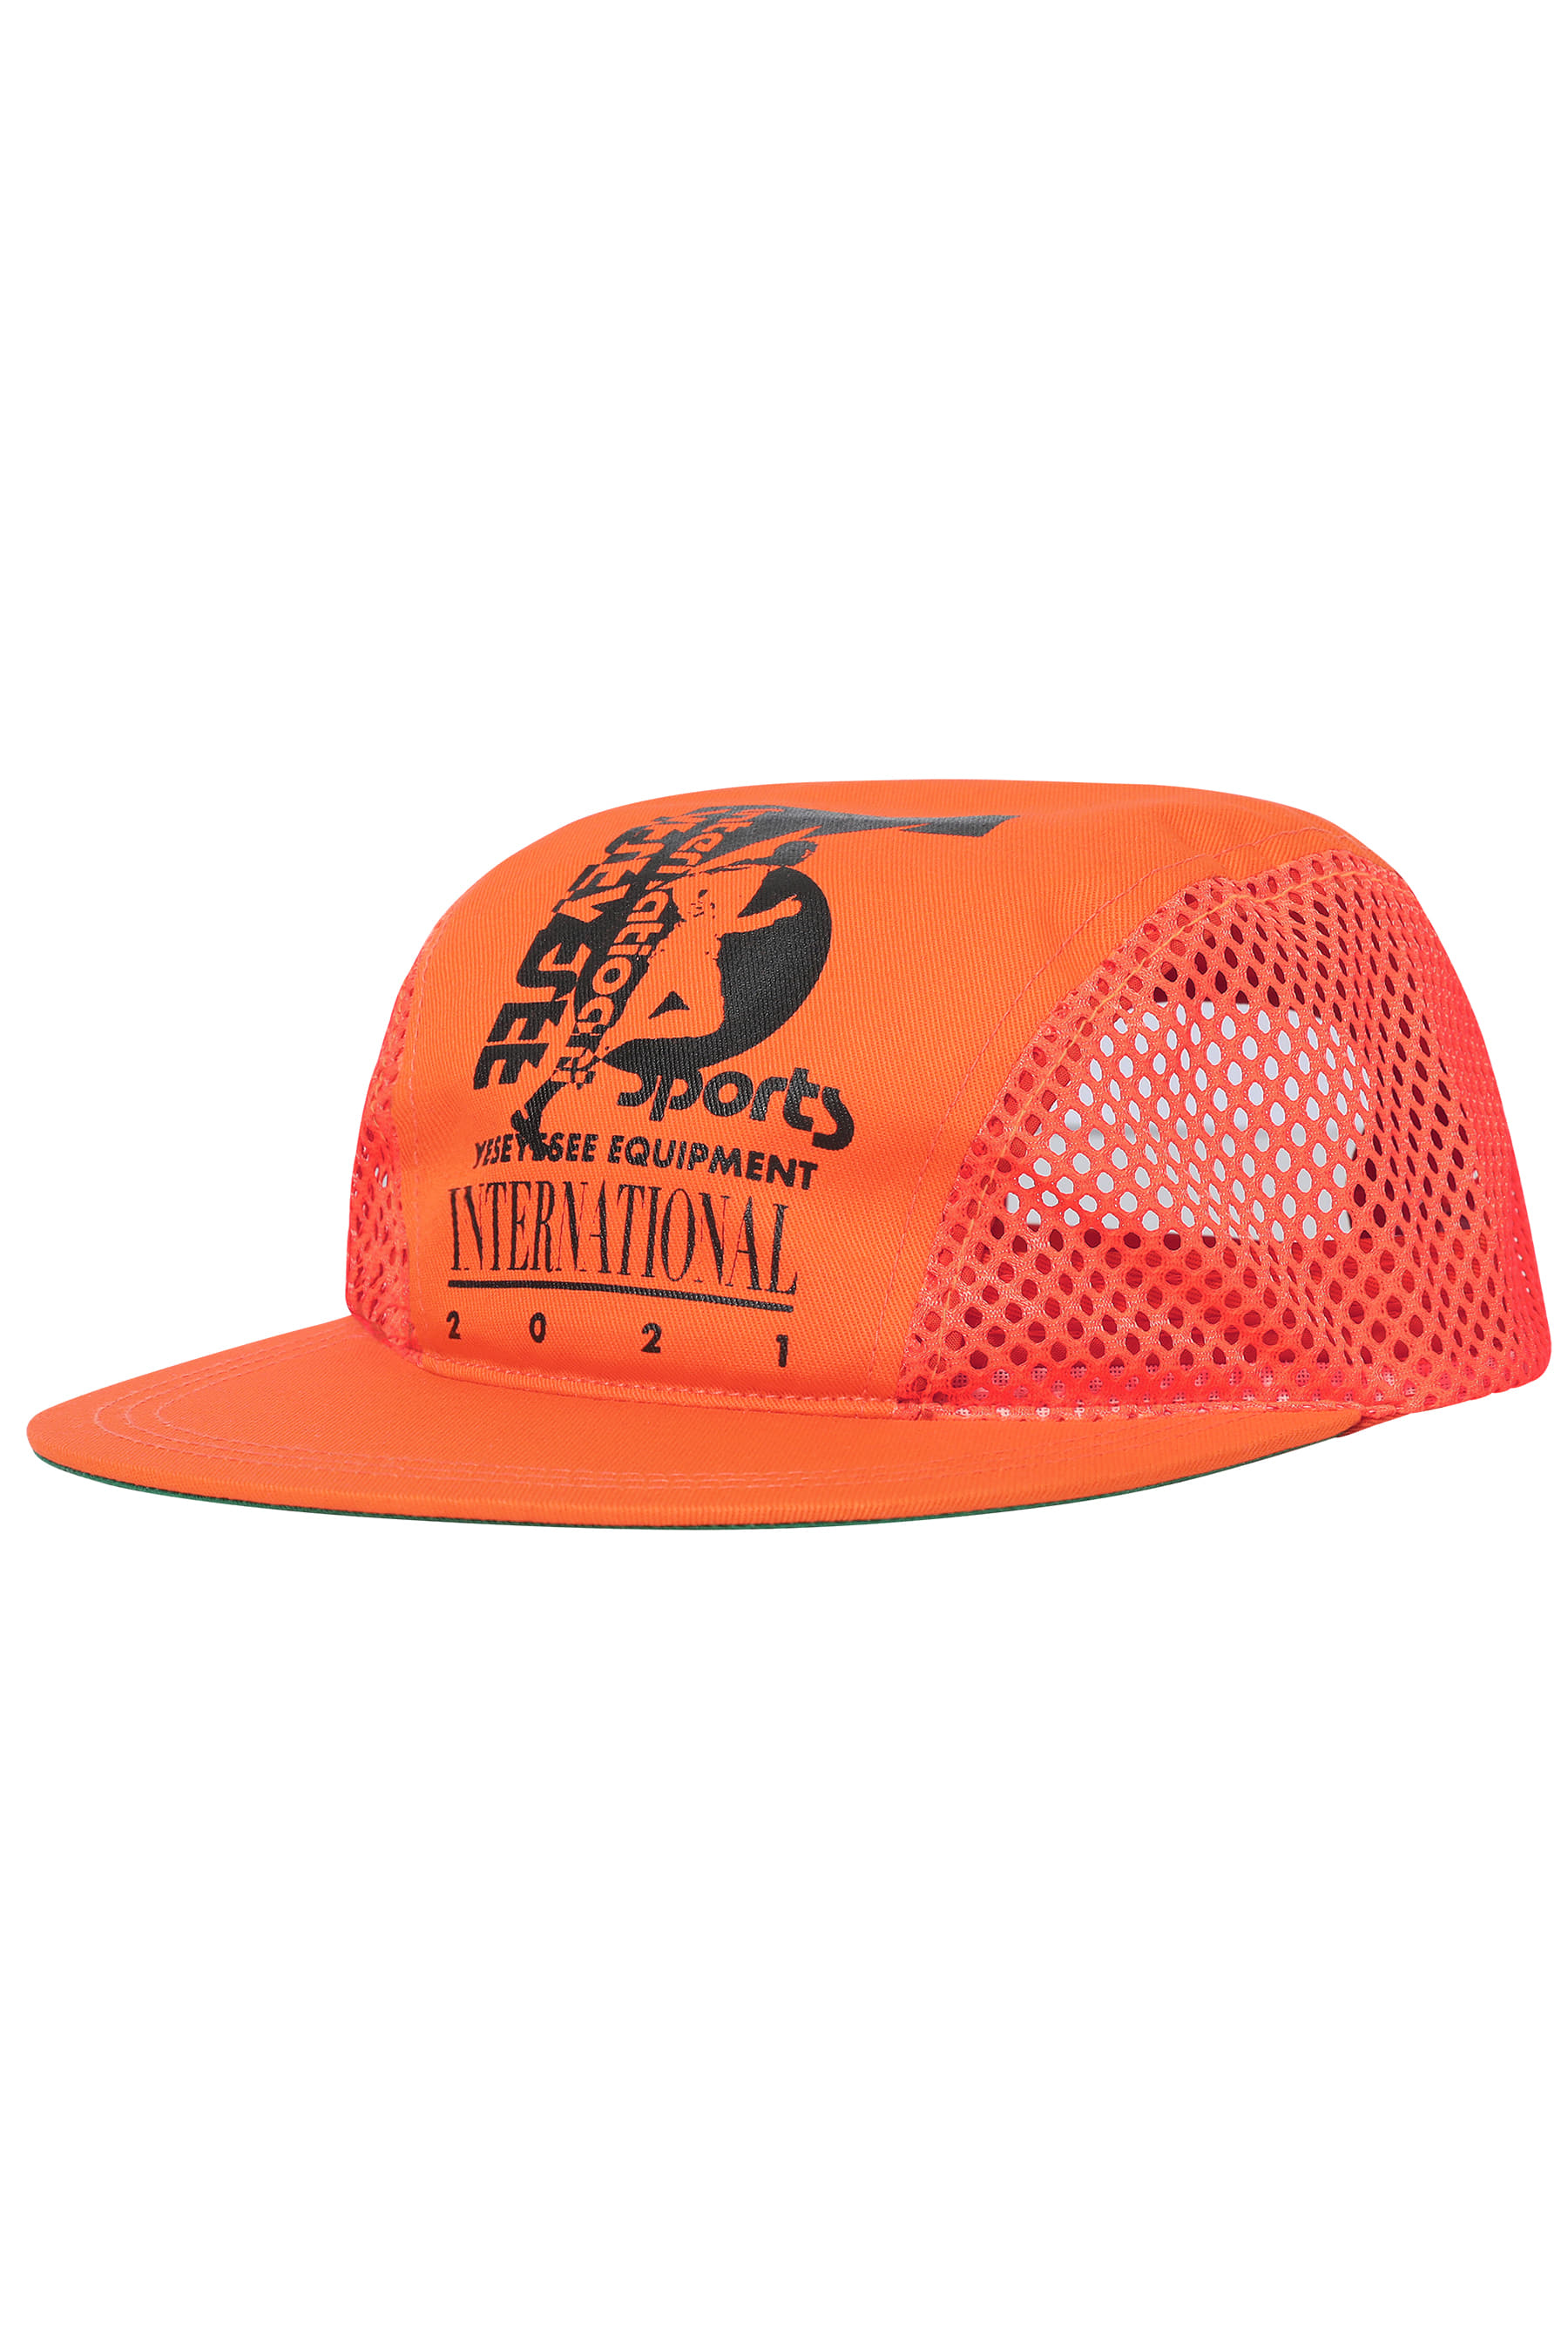 Y.E.S Sportsman Cap Orange